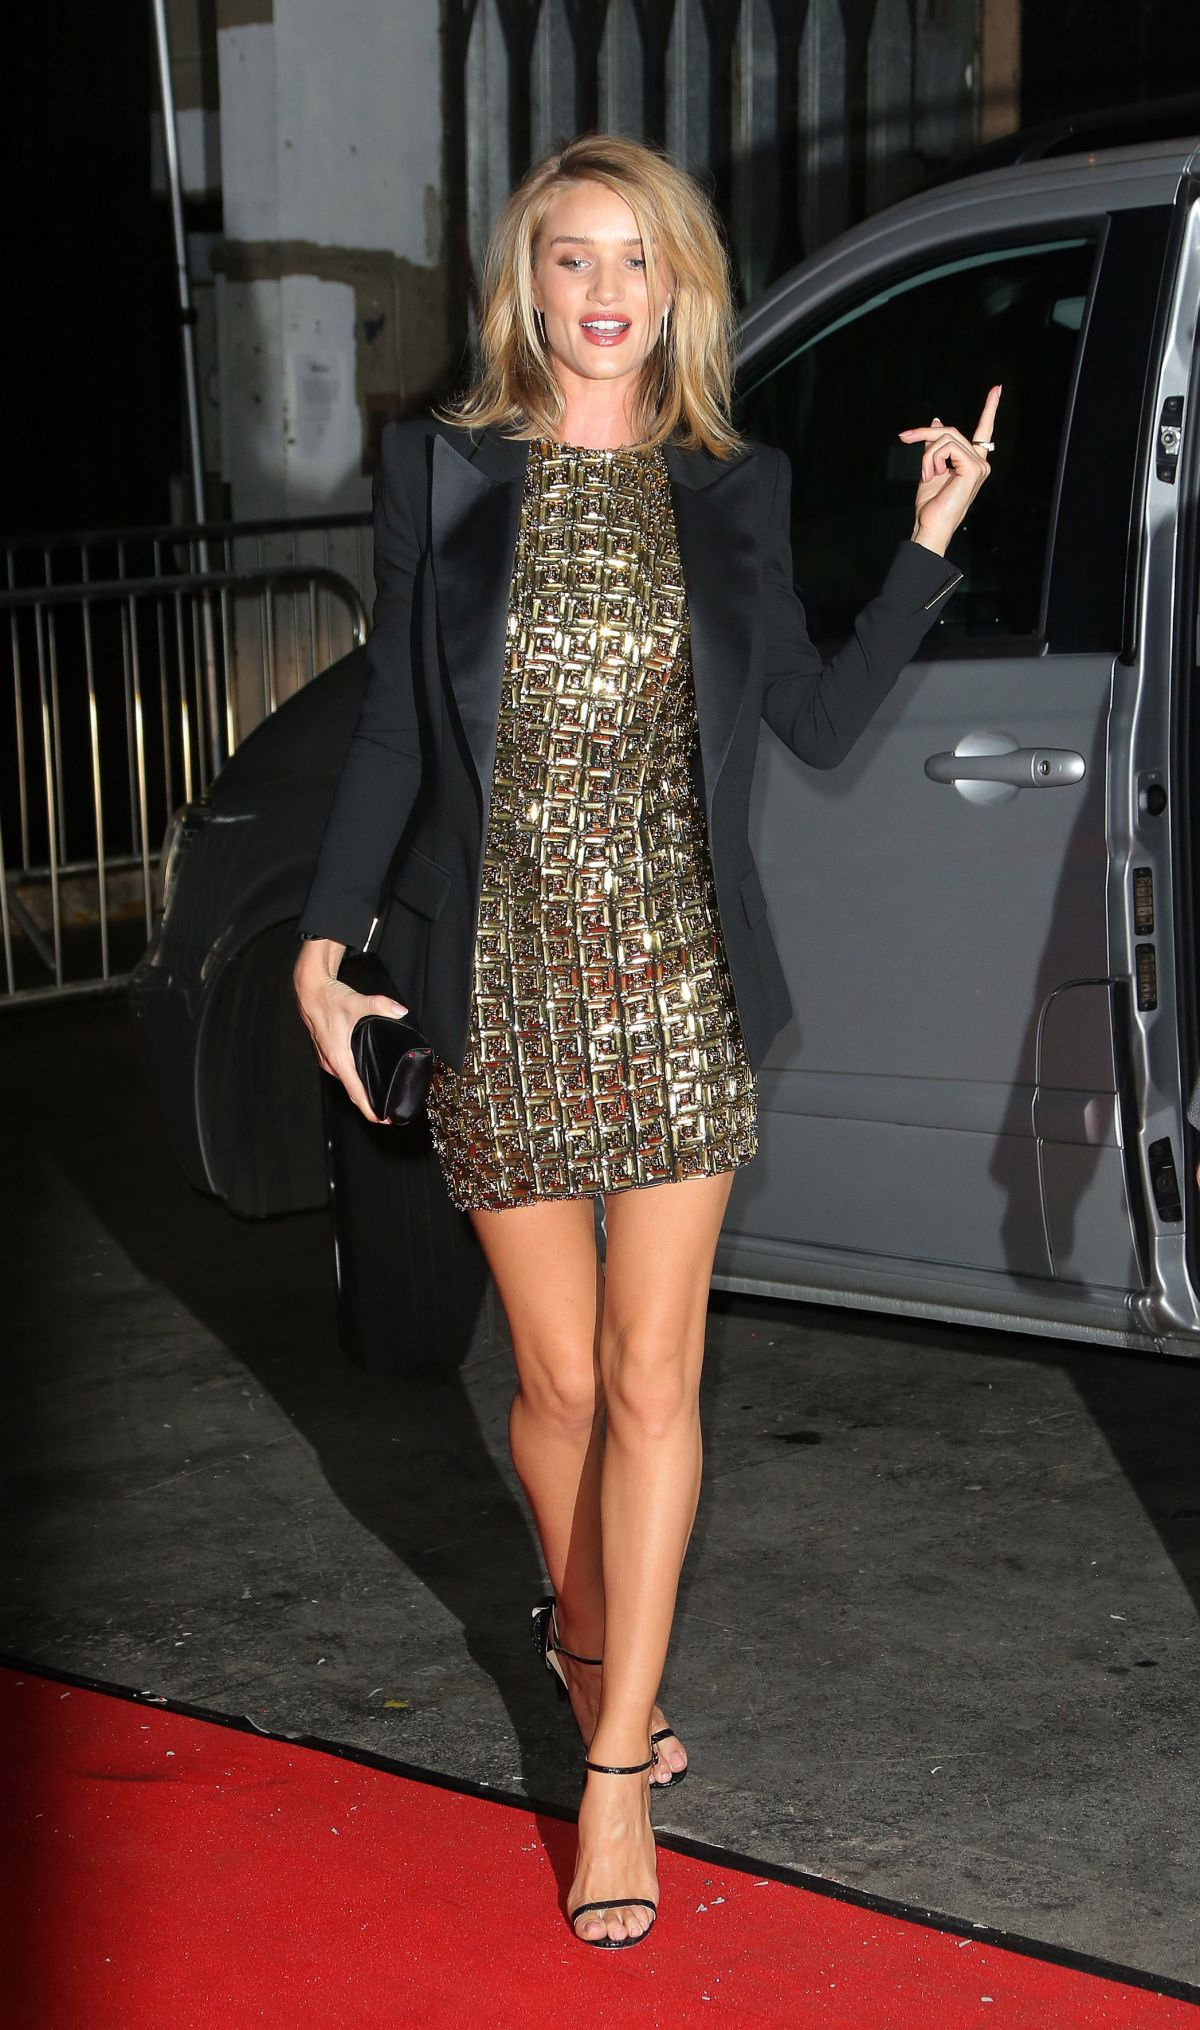 ROSIE HUNTINGTON-WHITELEY at Universal Music Brits Party in London ... Rosie Huntington Whiteley